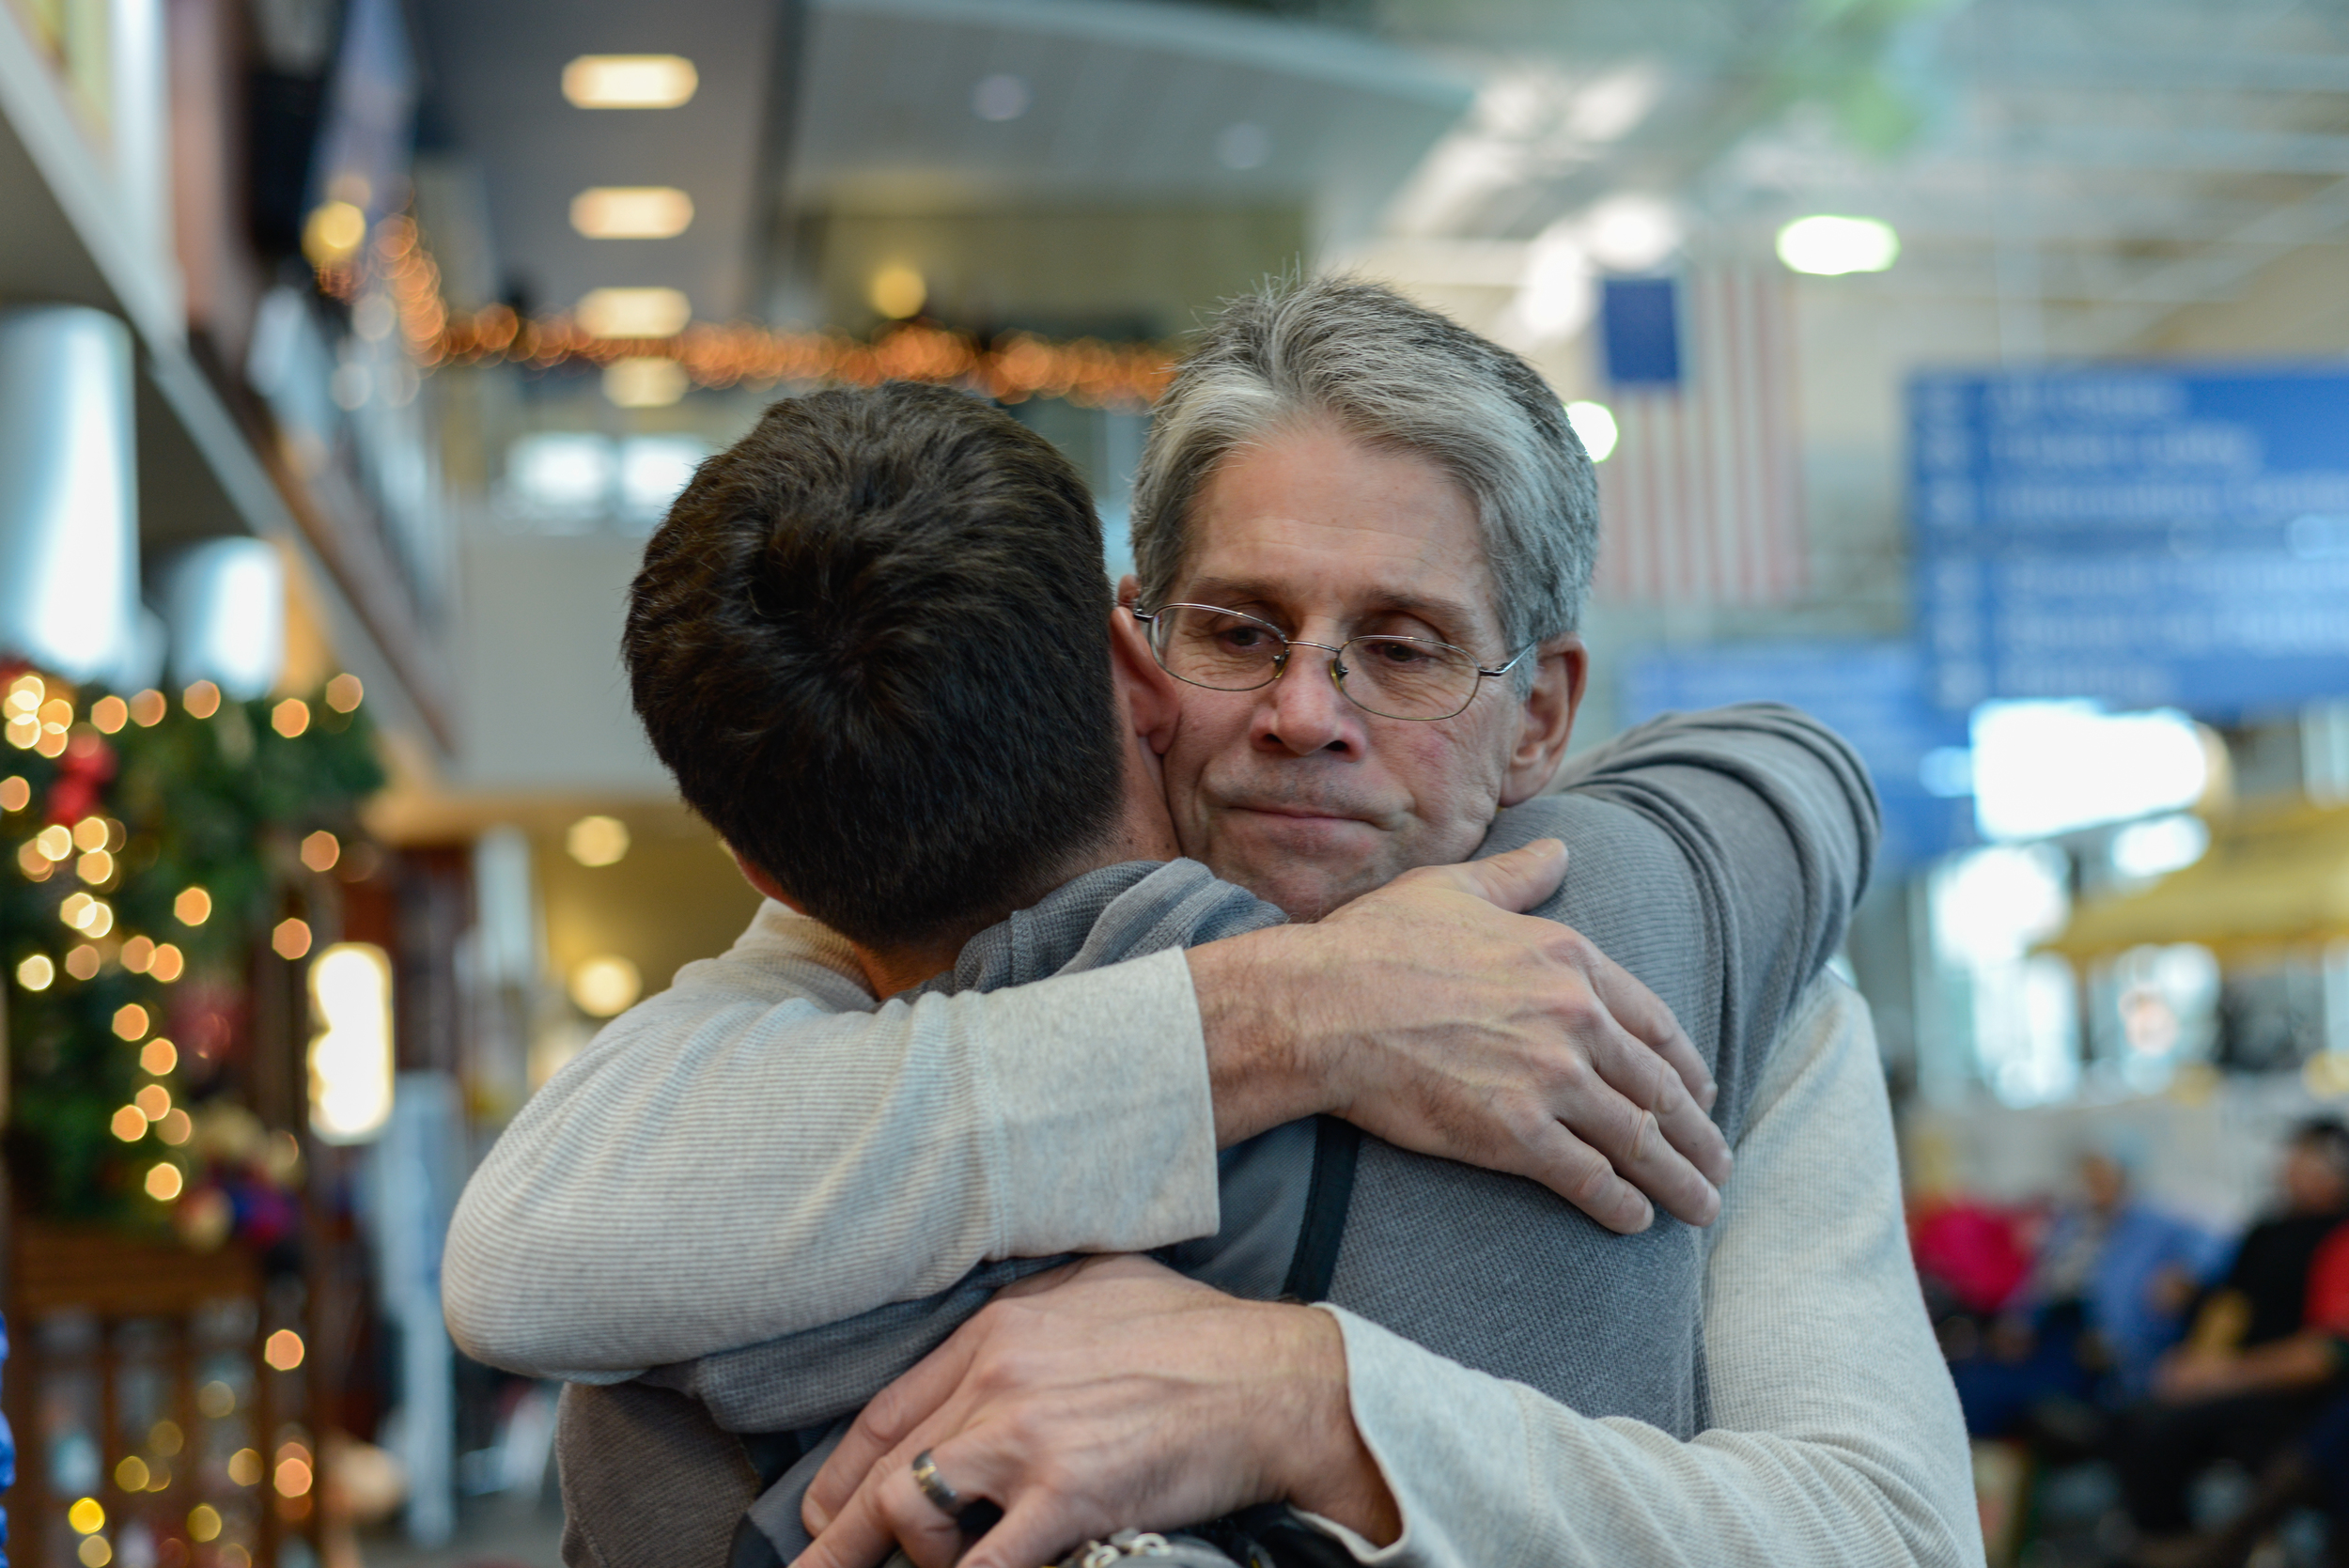 The love Rick has for his son. This photo gives me chills from all the emotions behind it.